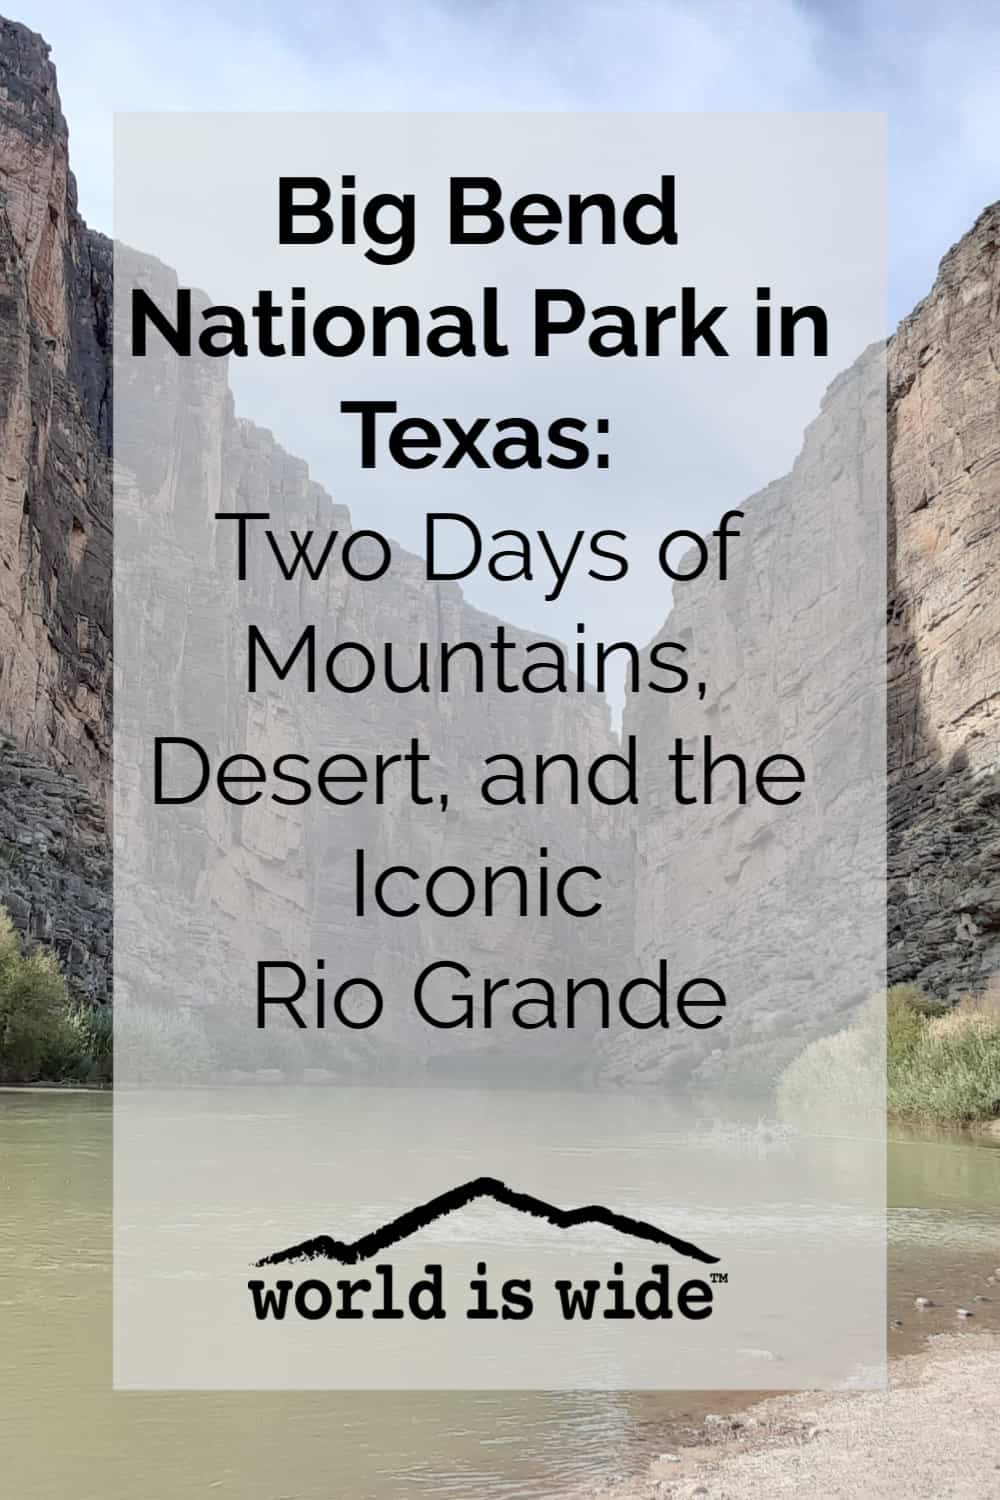 Two days in Big Bend National Park